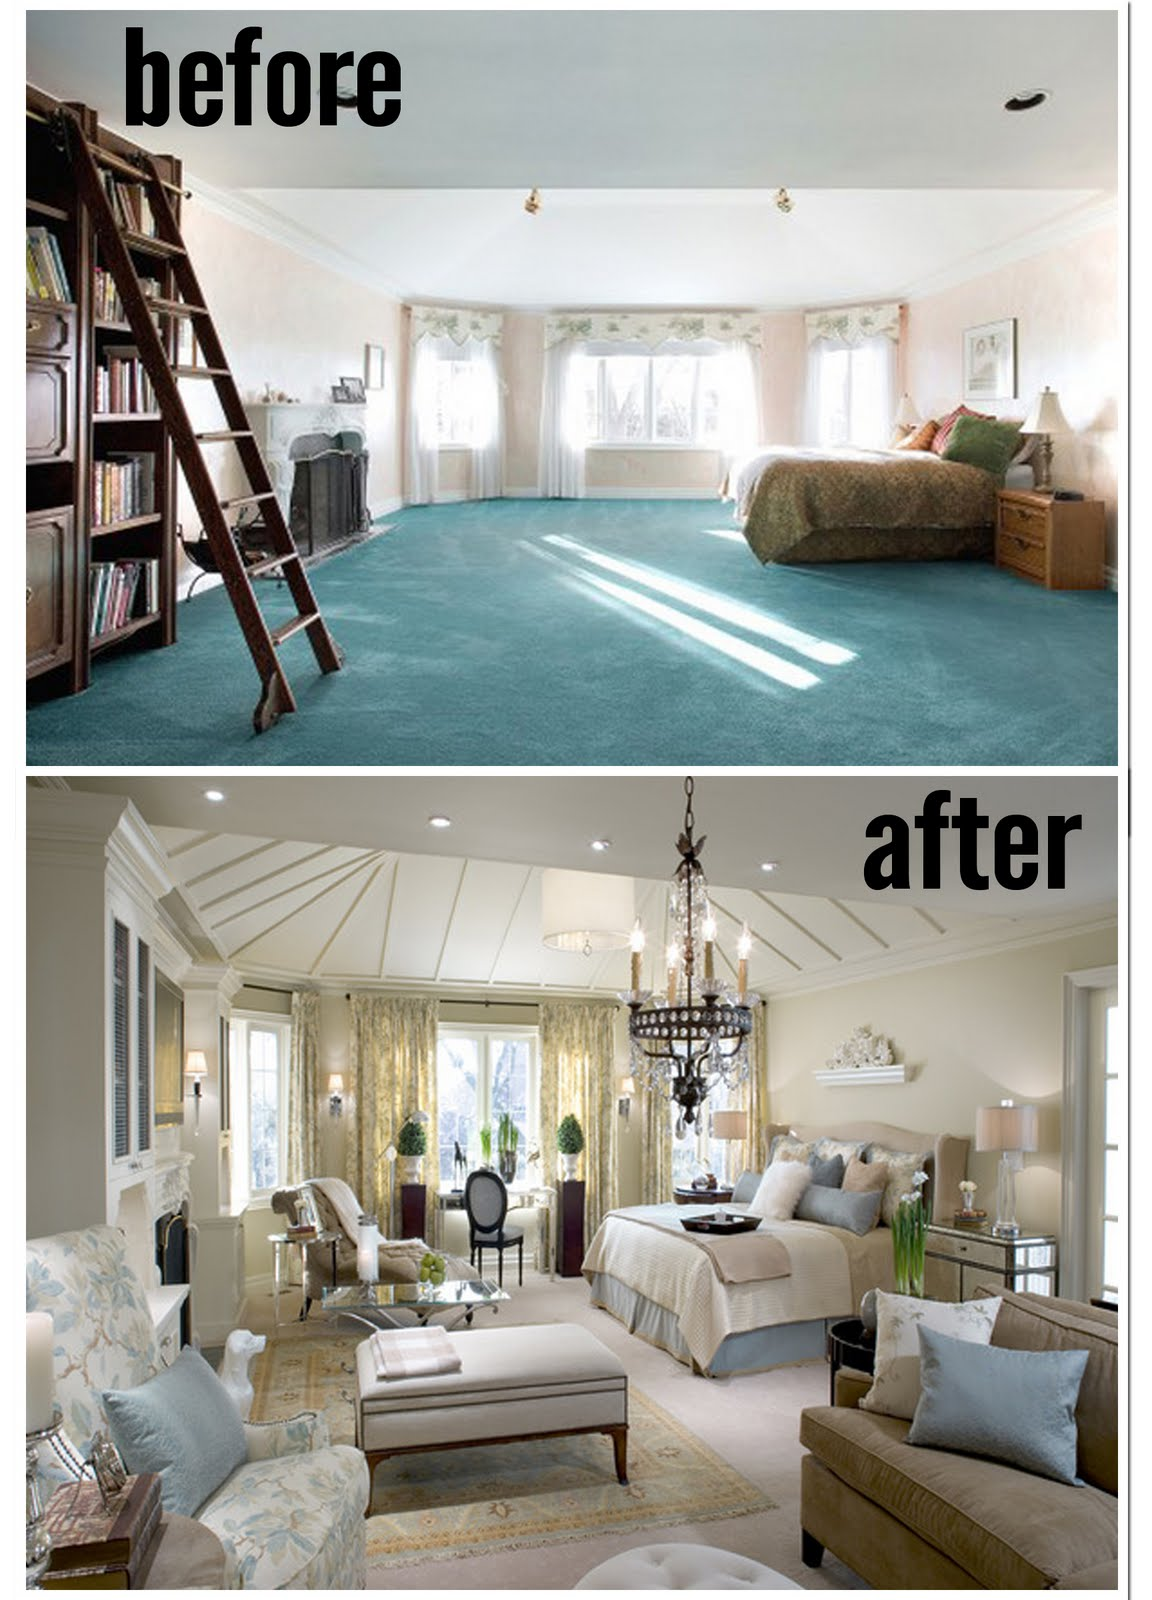 candice olson designs before and after photo - 1